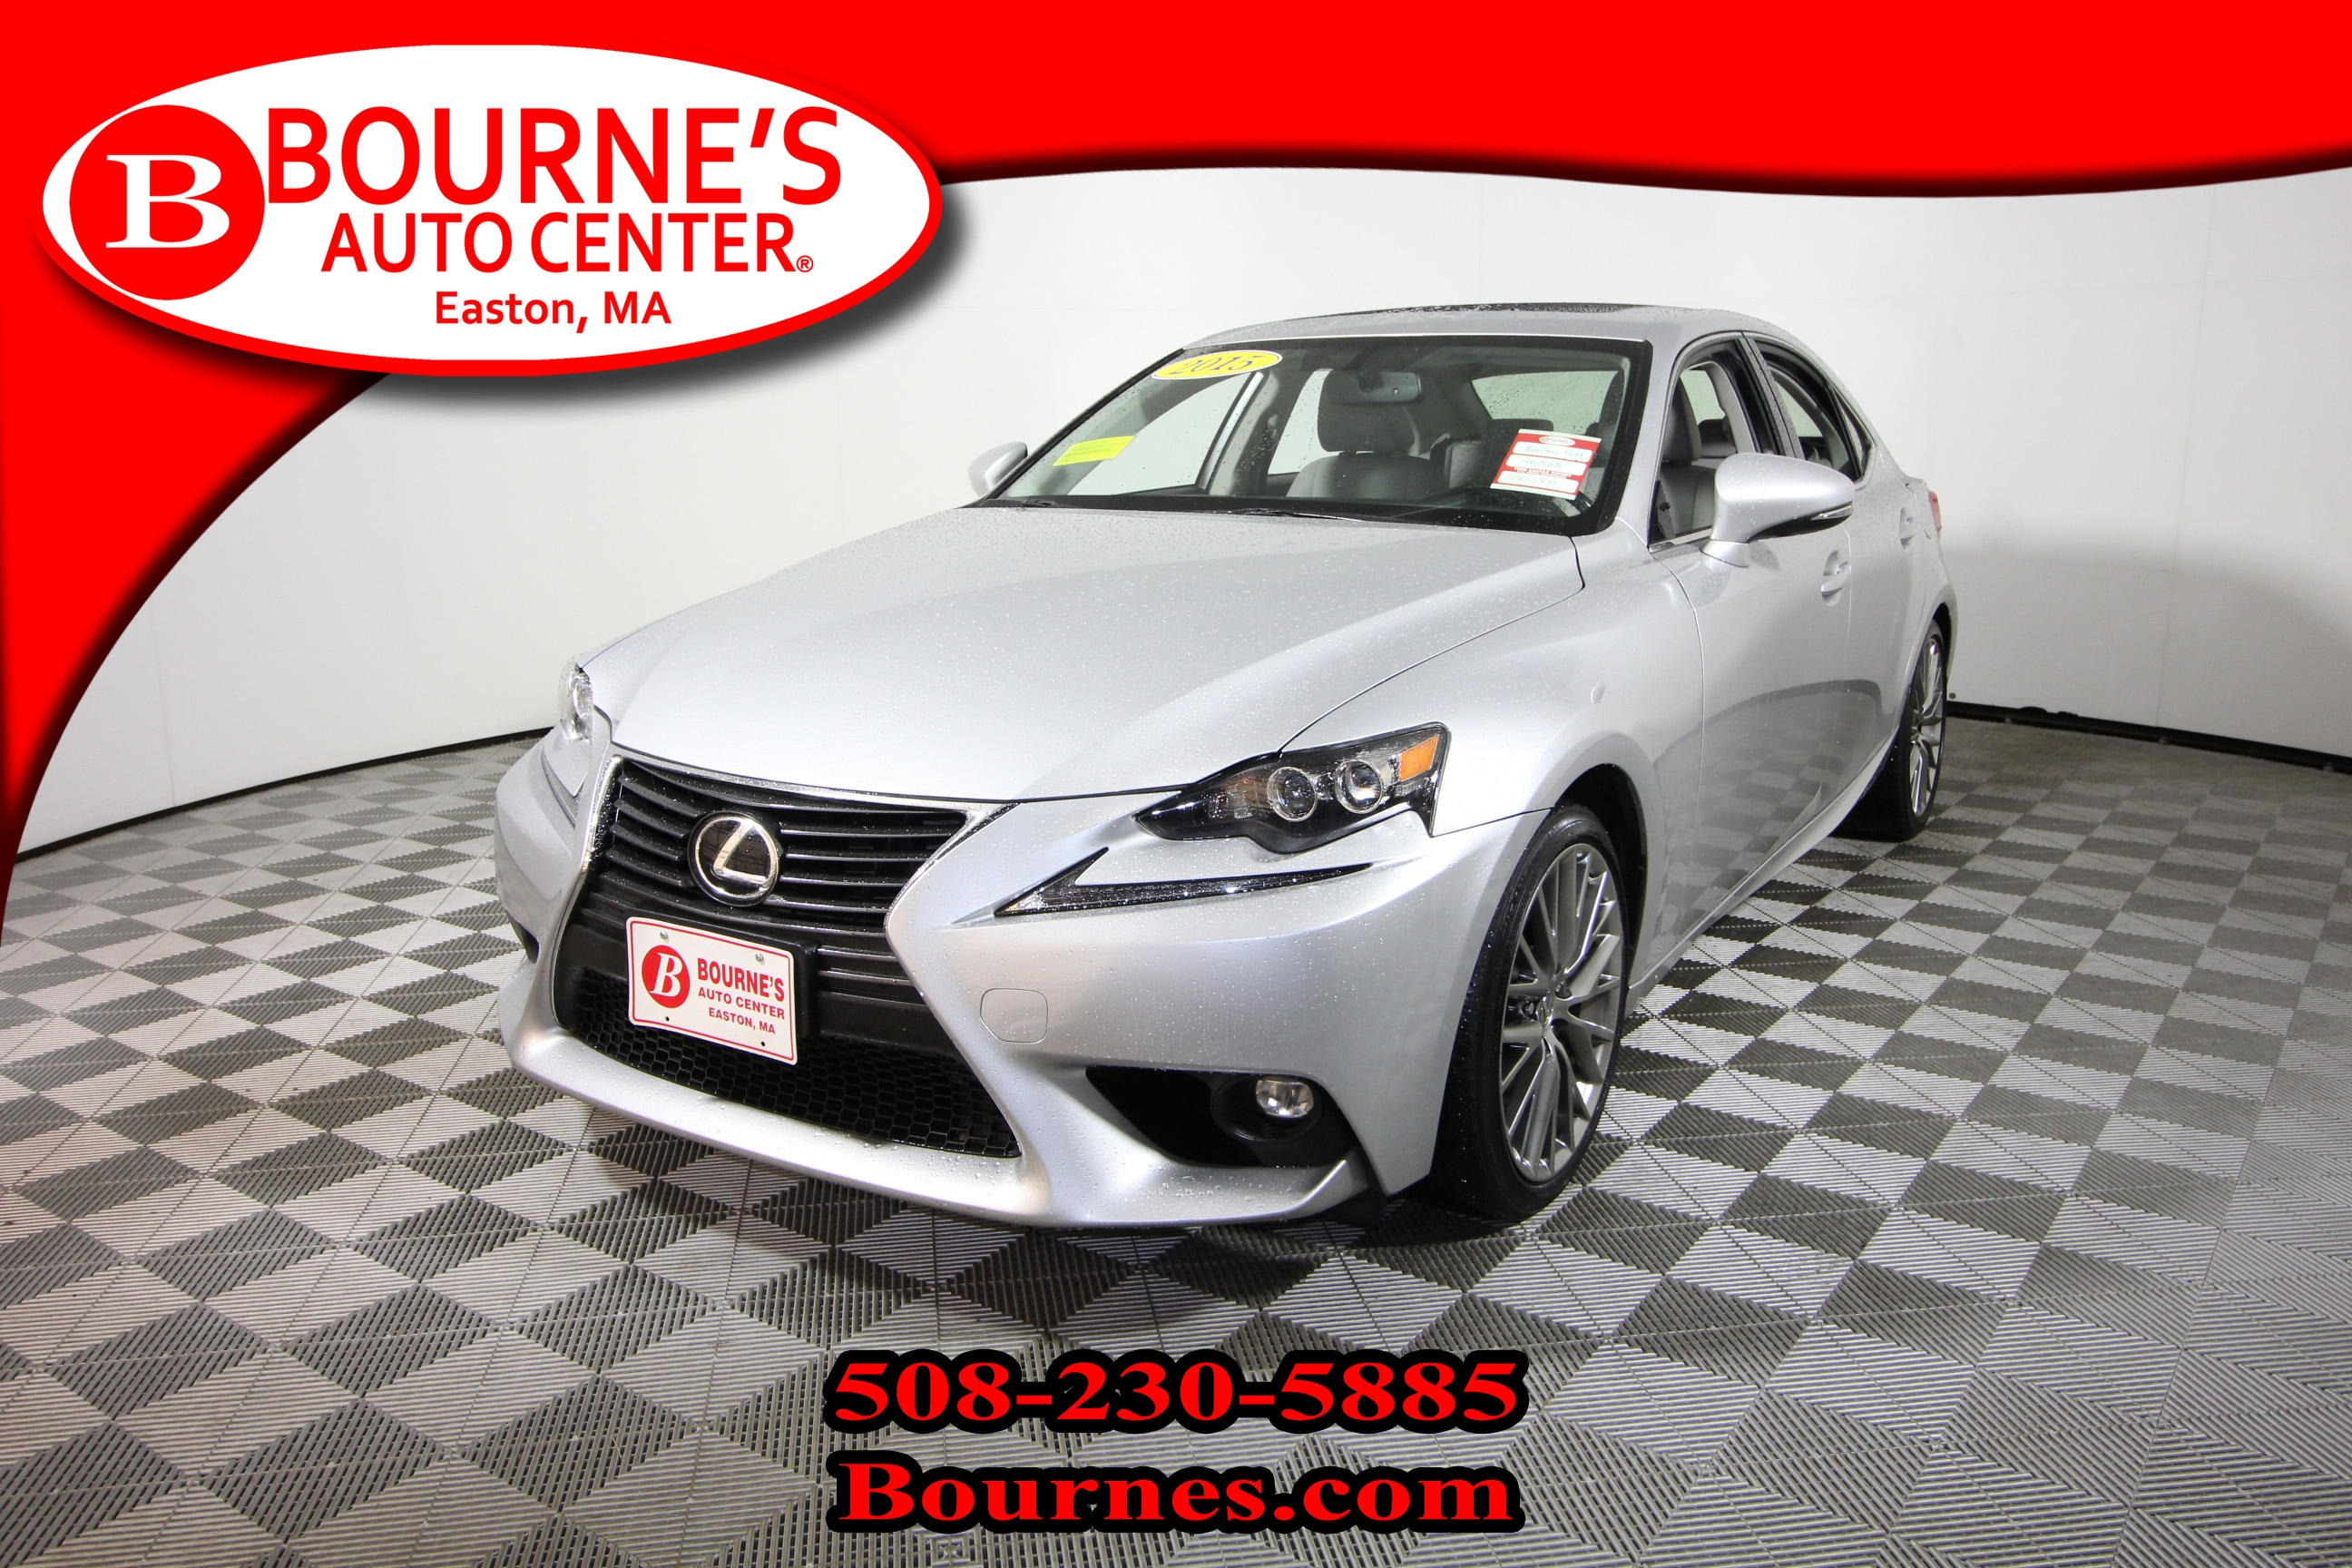 Used 2015 LEXUS IS 250 For Sale